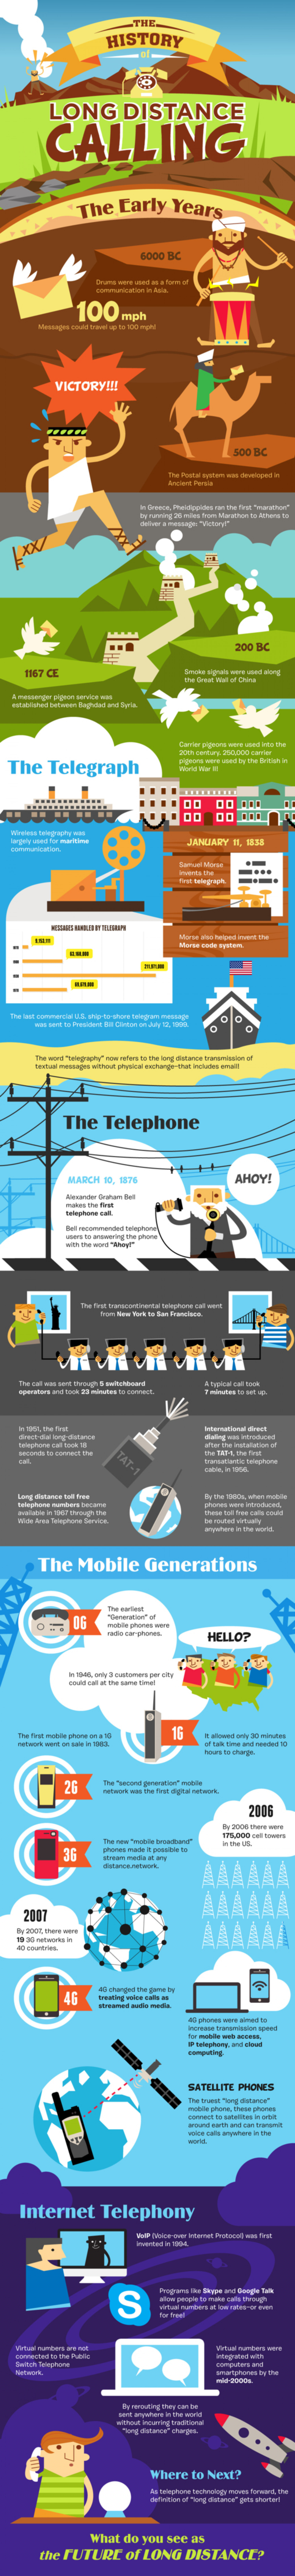 The History of Long Distance Calling Infographic